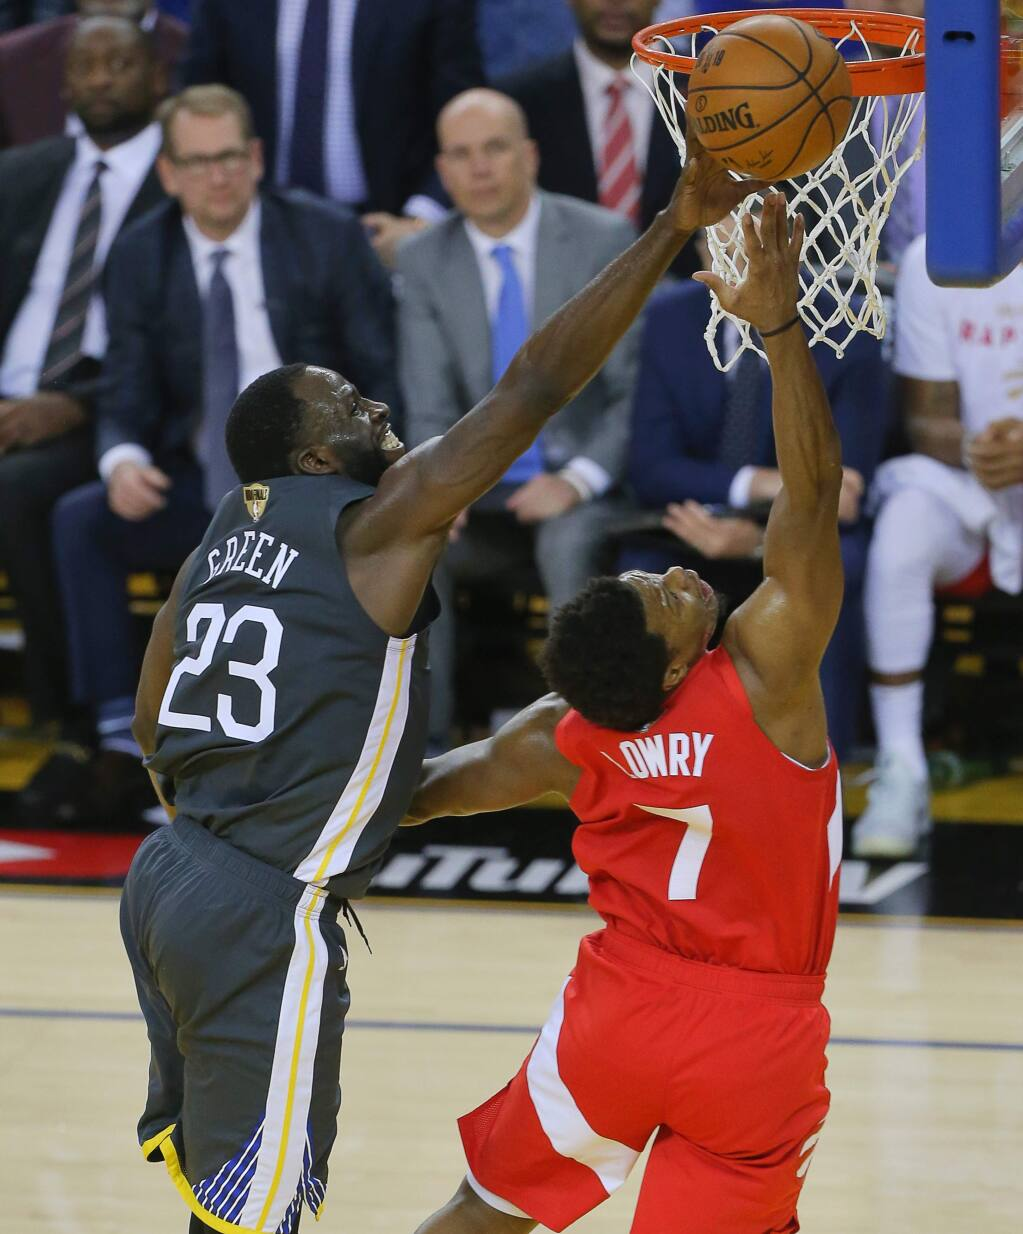 Golden State Warriors forward Draymond Green blocks a shot attempt by Toronto Raptors guard Kyle Lowry during Game 4 of the NBA Finals in Oakland on Friday, June 7, 2019. (Christopher Chung / The Press Democrat)